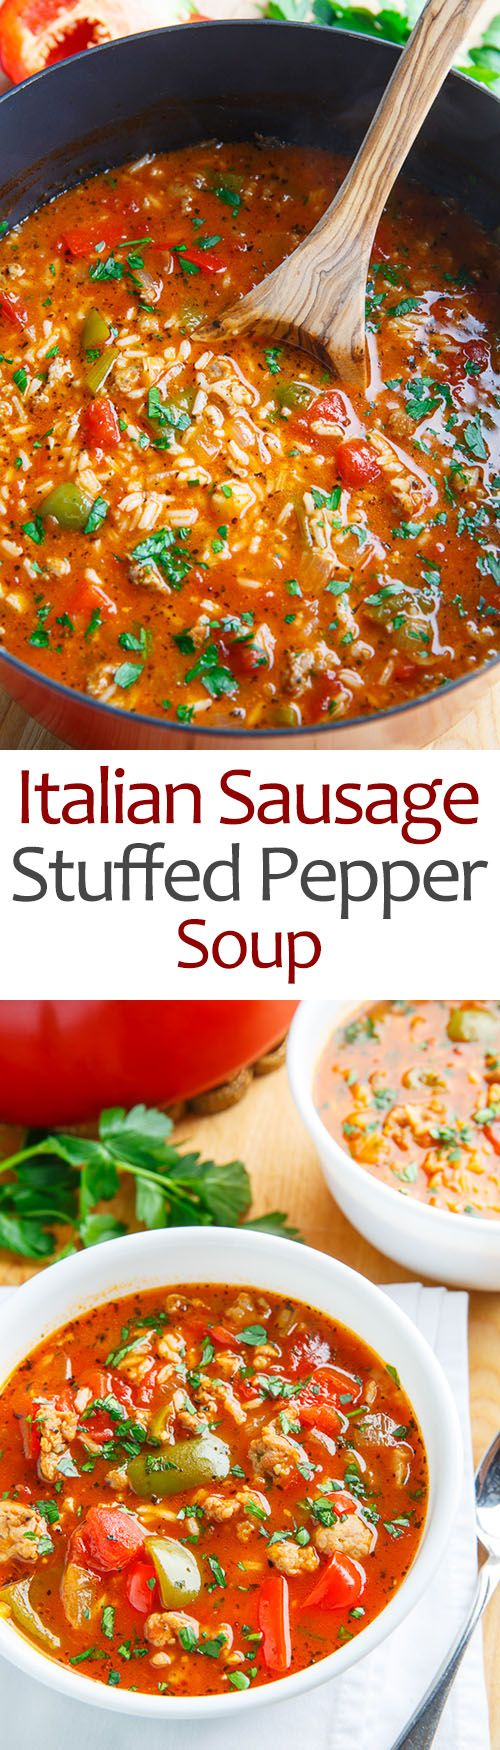 Italian Sausage Stuffed Pepper Soup - I made this with brown rice and pretty much followed the directions as given. I cooked the brown rice in beef broth instead of water and I used Fire Roasted diced tomatoes and that gave it a nice kick. I will definitely be making it again. It is delicious...